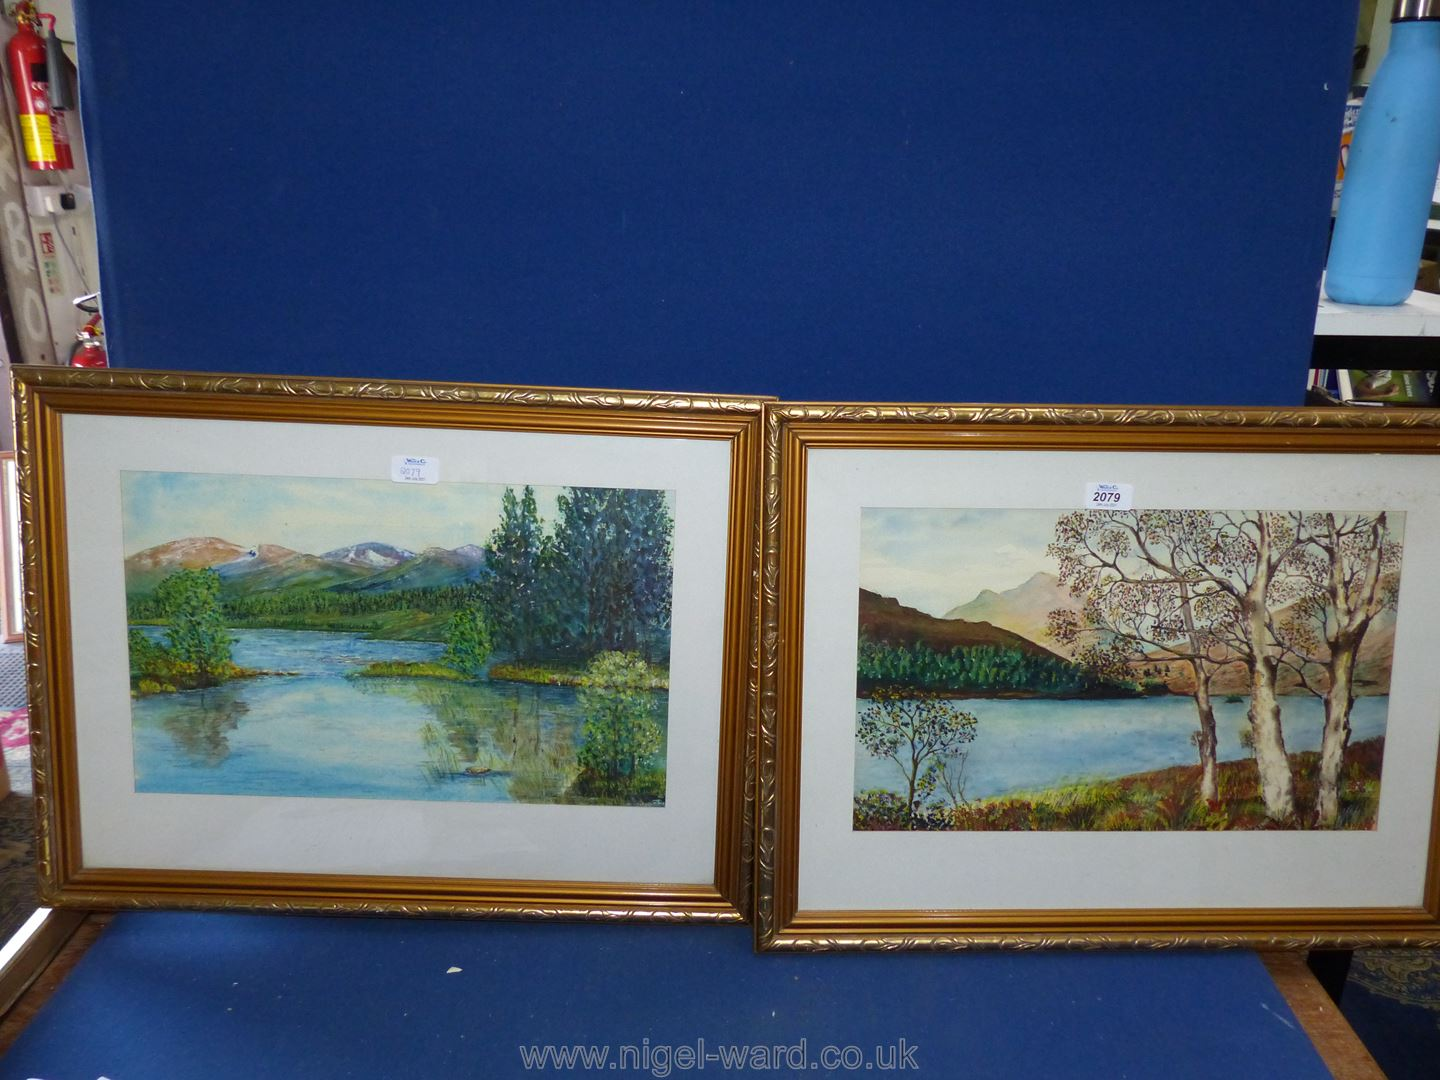 A pair of gilt framed watercolours depicting river landscapes and hills in the distance,